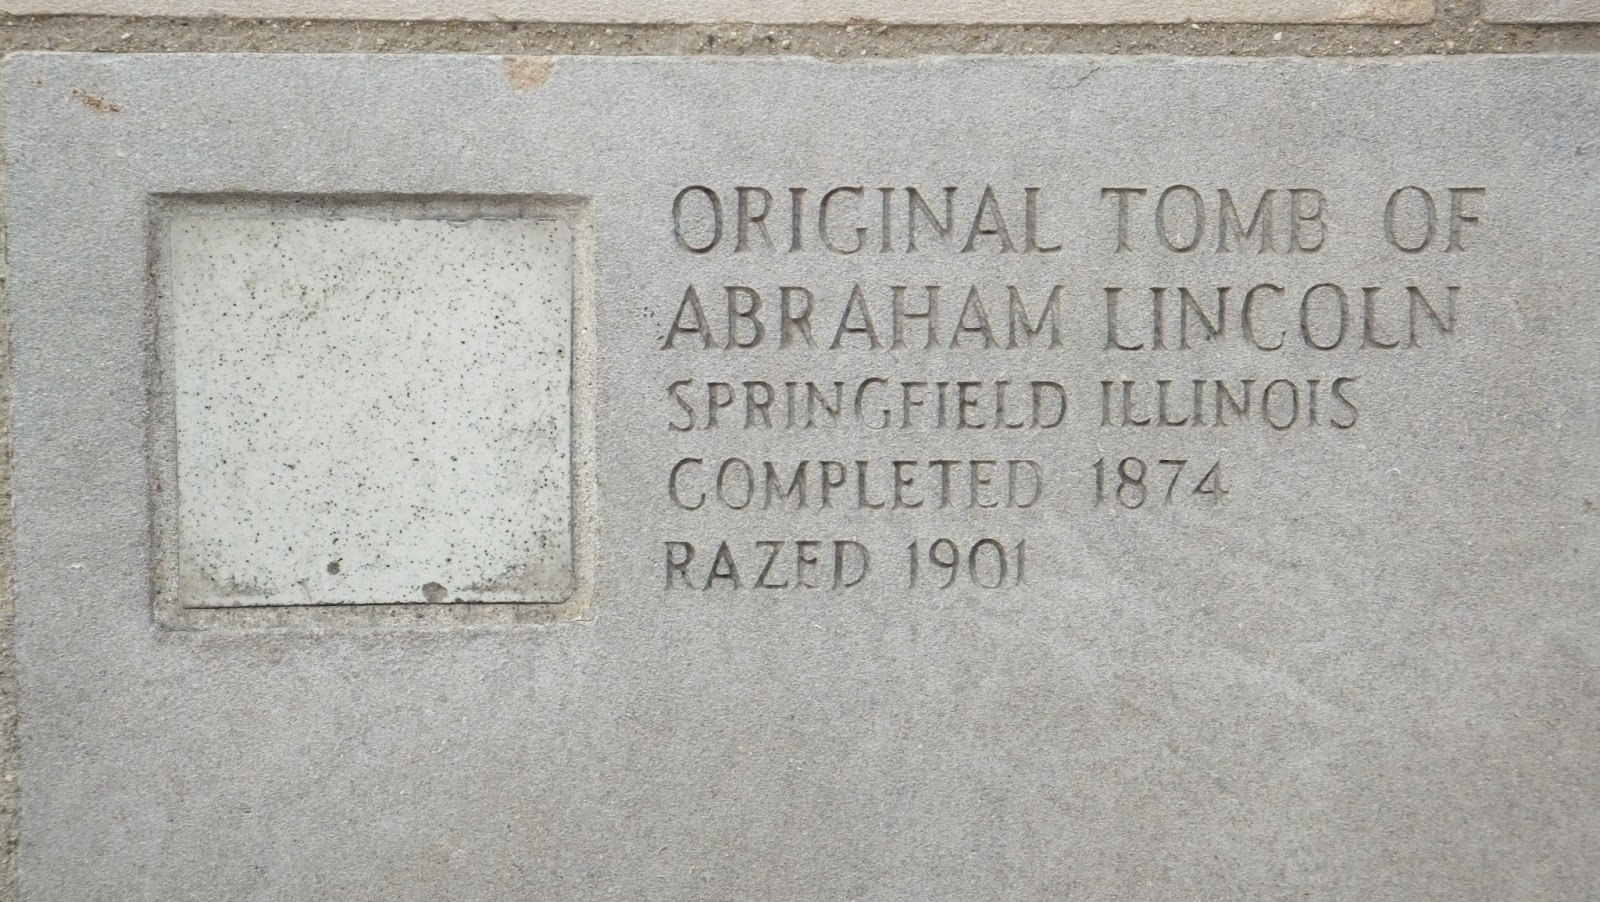 Tomb of Abraham Lincoln, Muro del Chicago Tribune